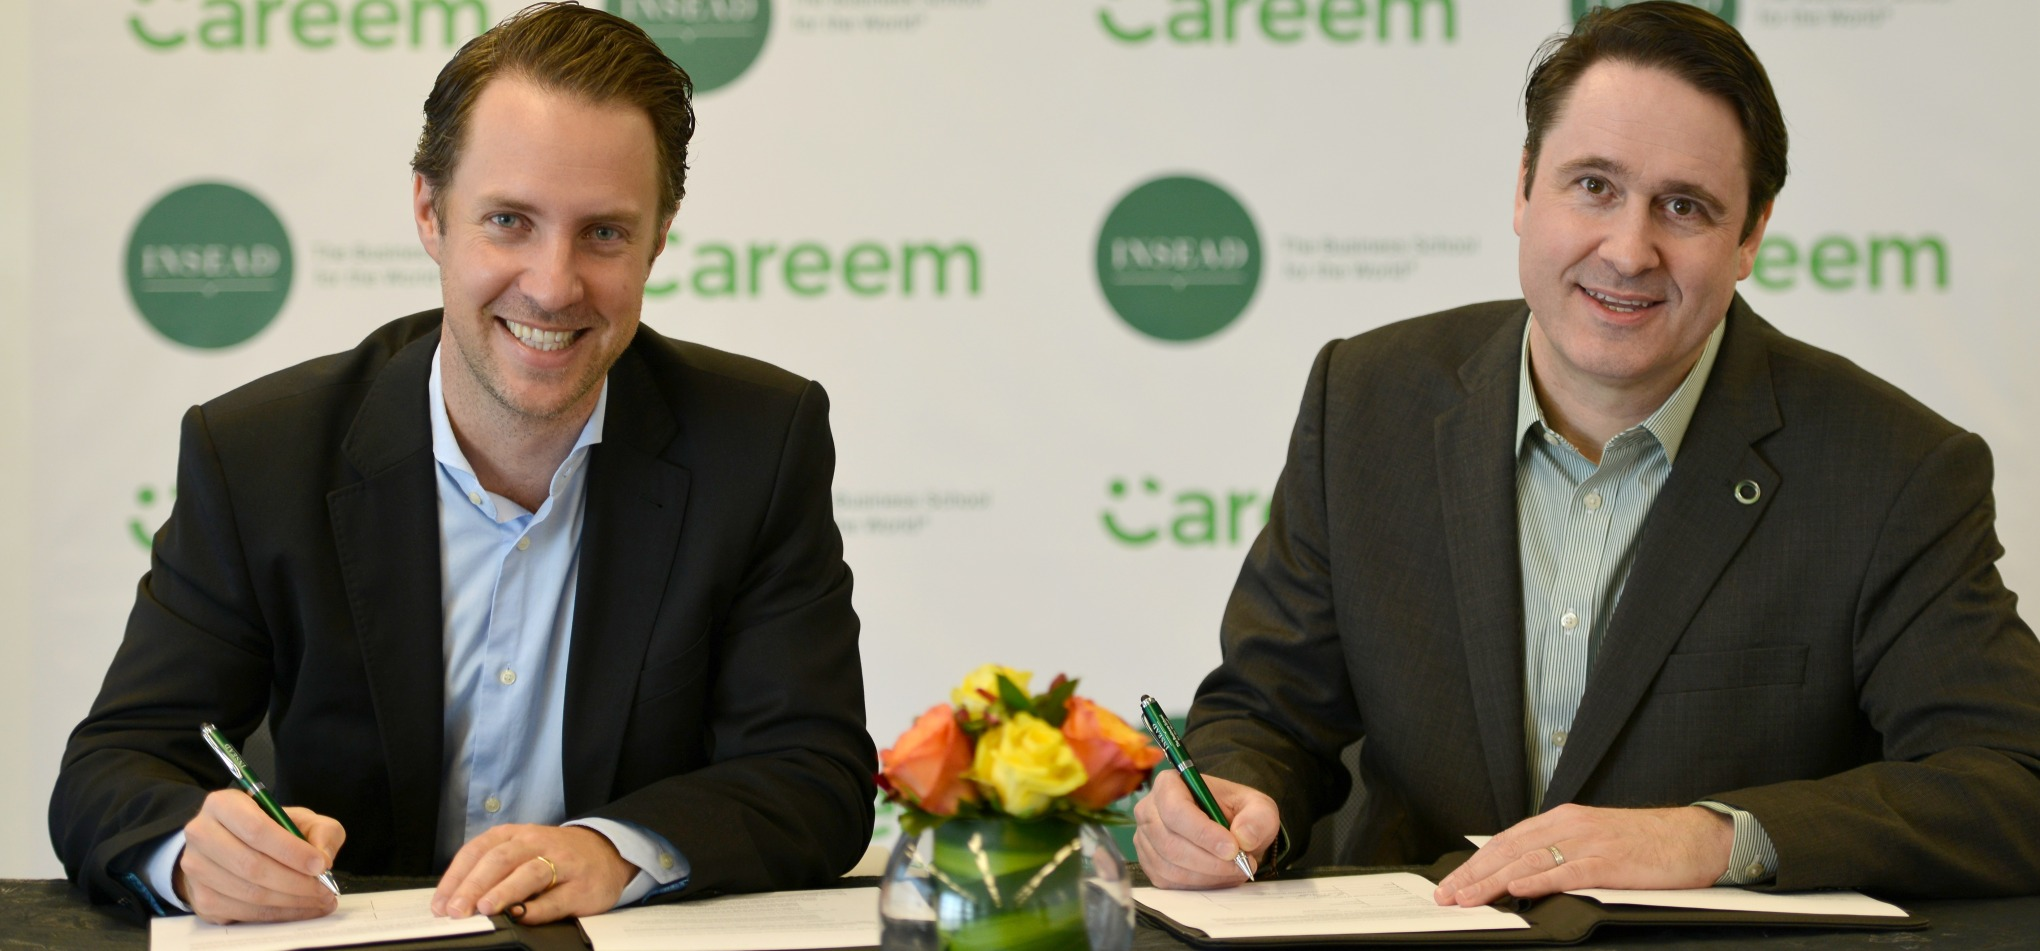 Careem and INSEAD